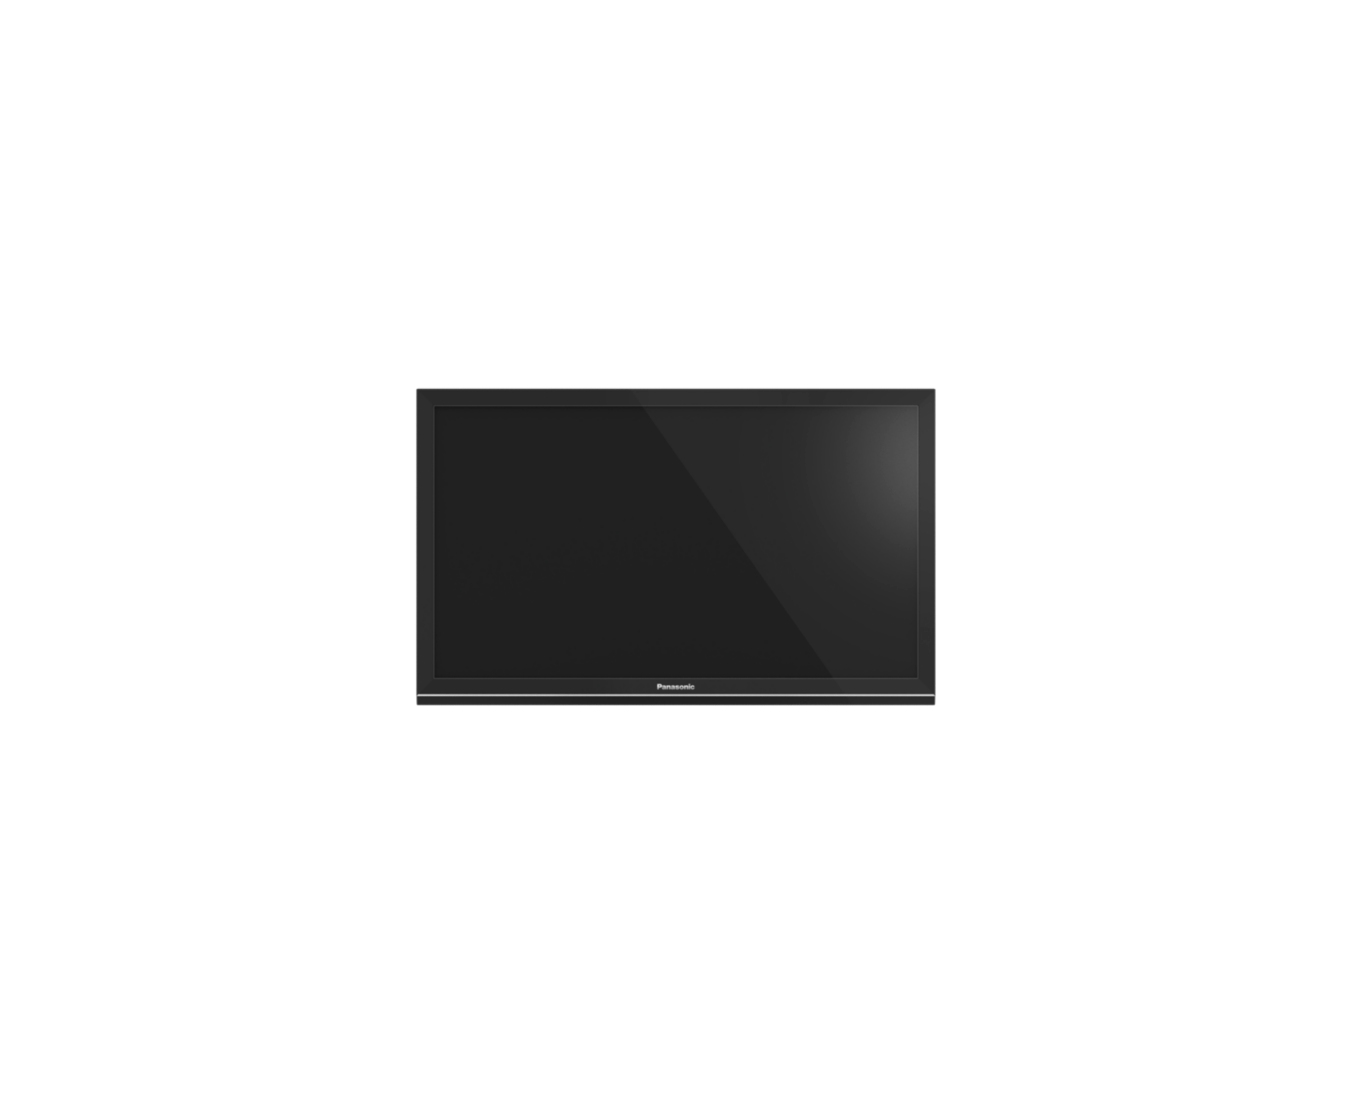 Panasonic TX-24FSW504 Piano Black